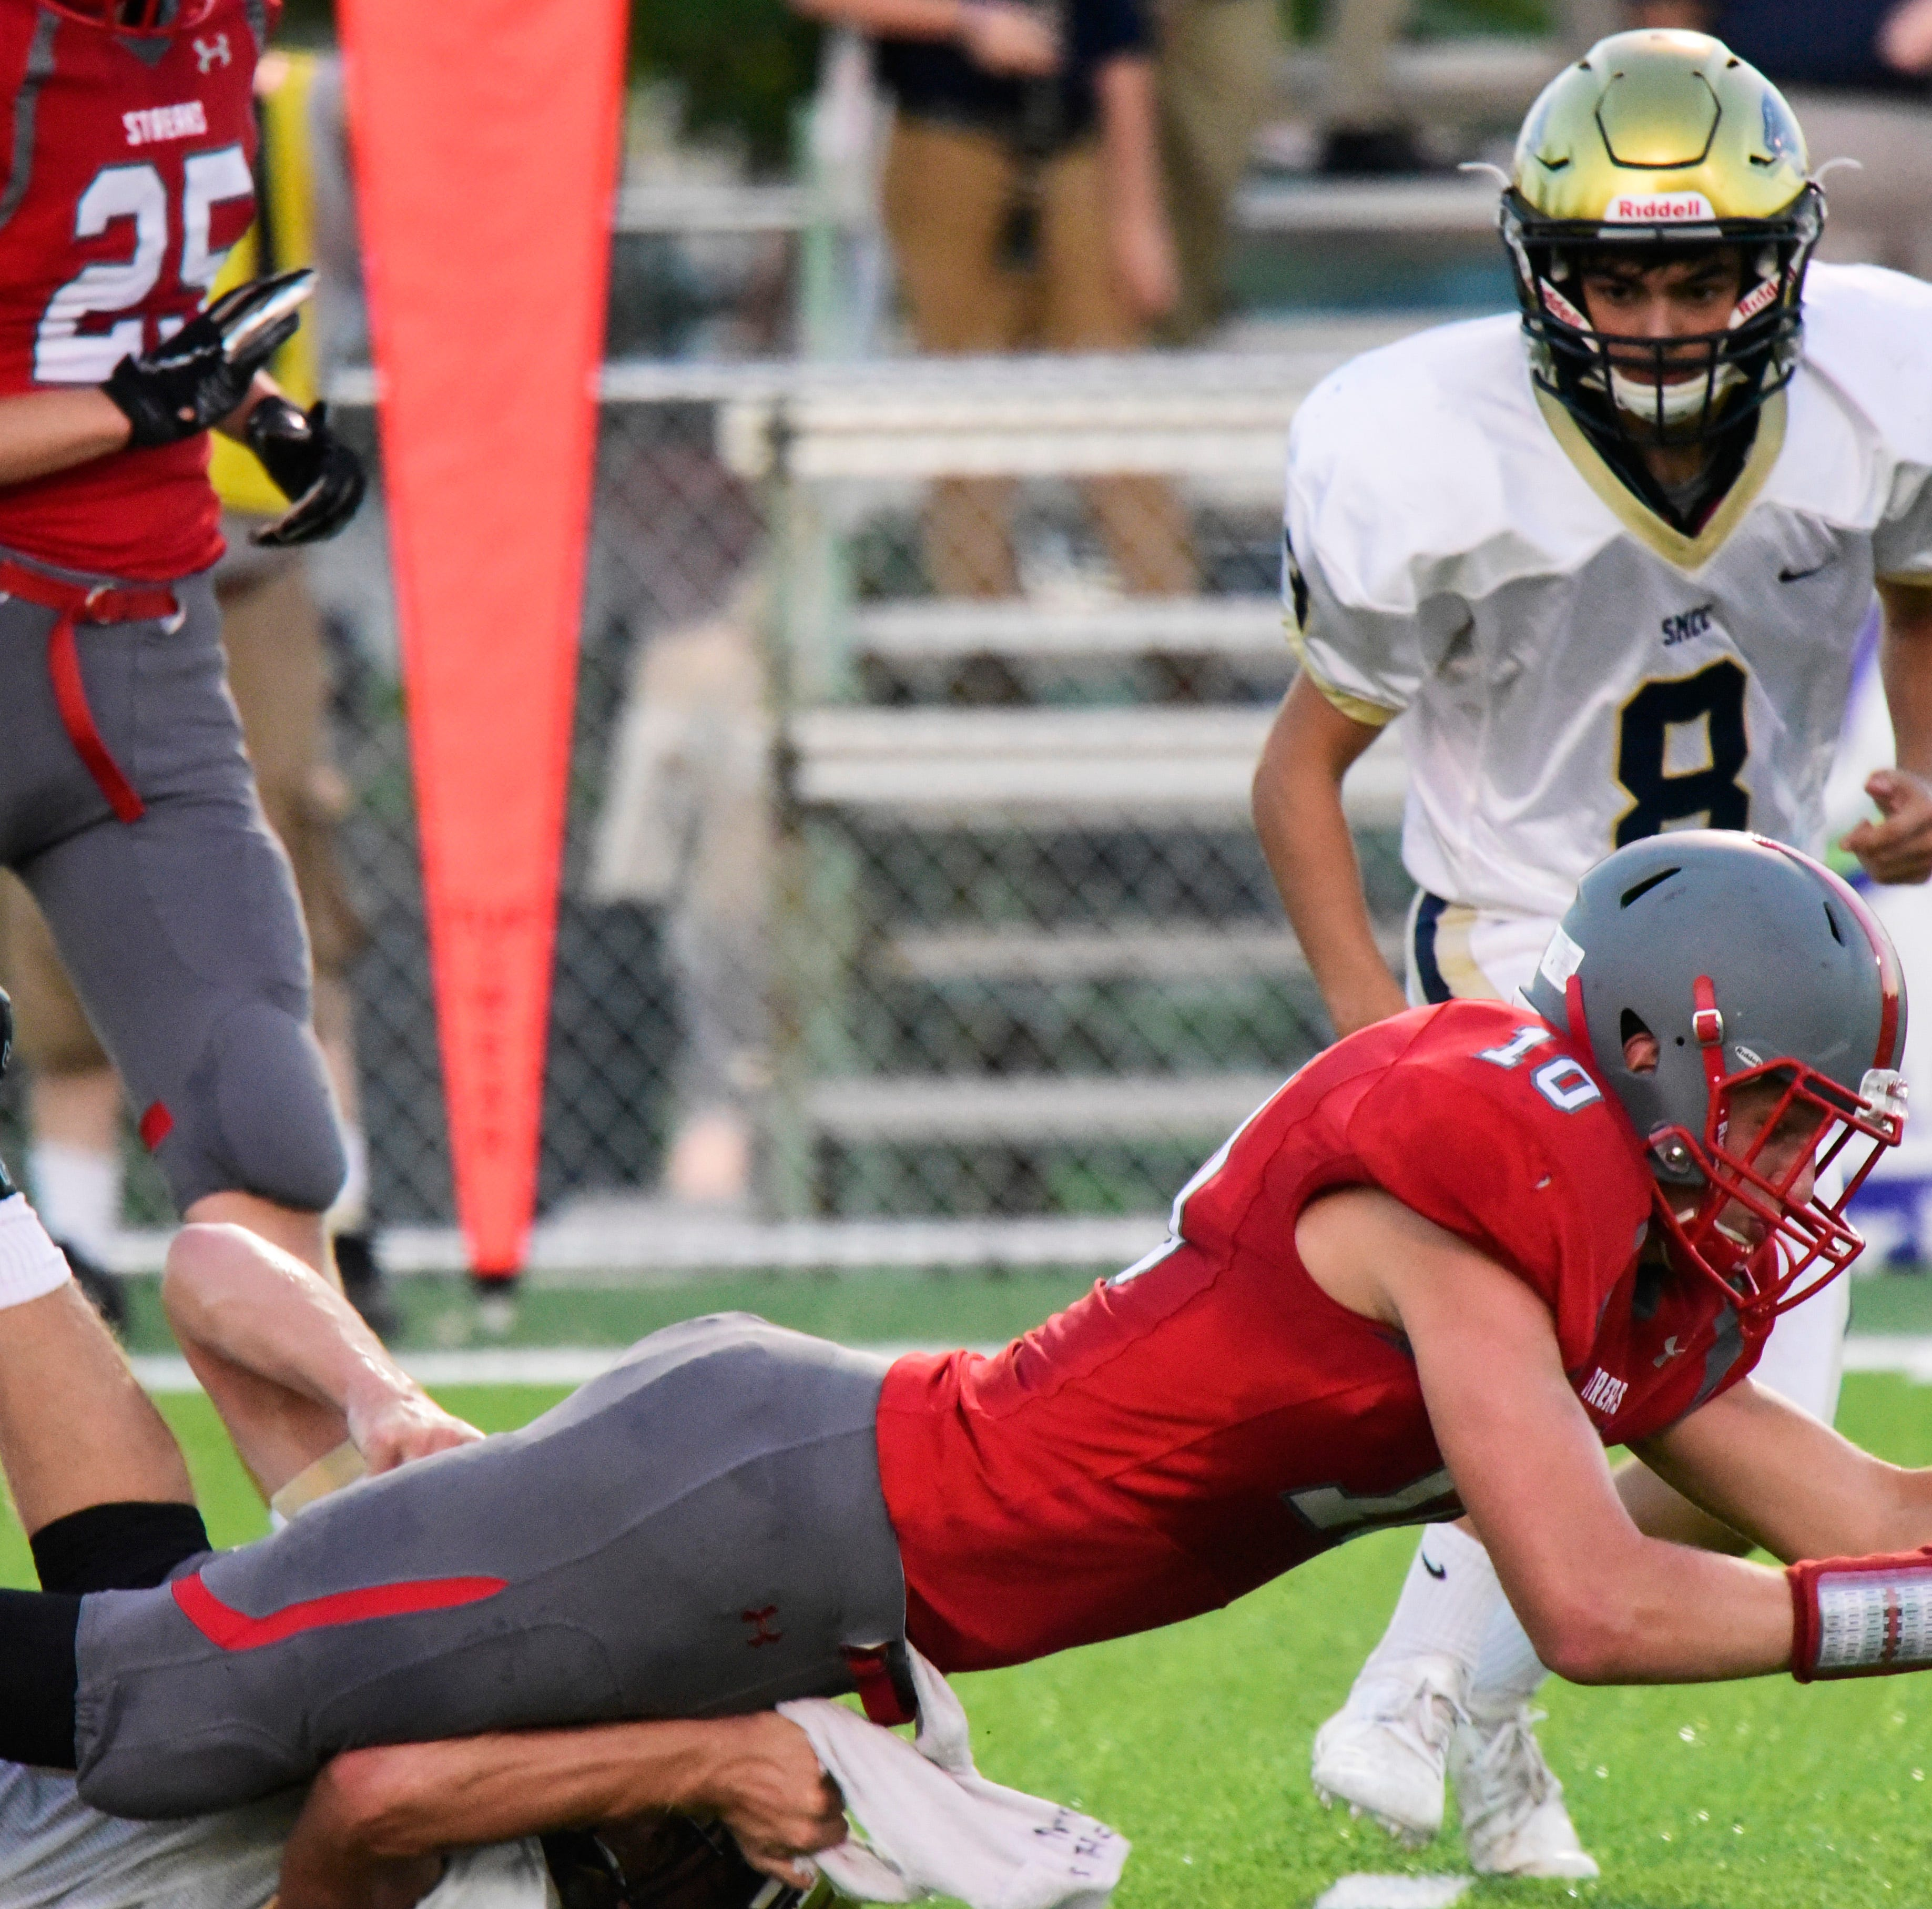 St. Joseph's offense stagnant in setback to SMCC